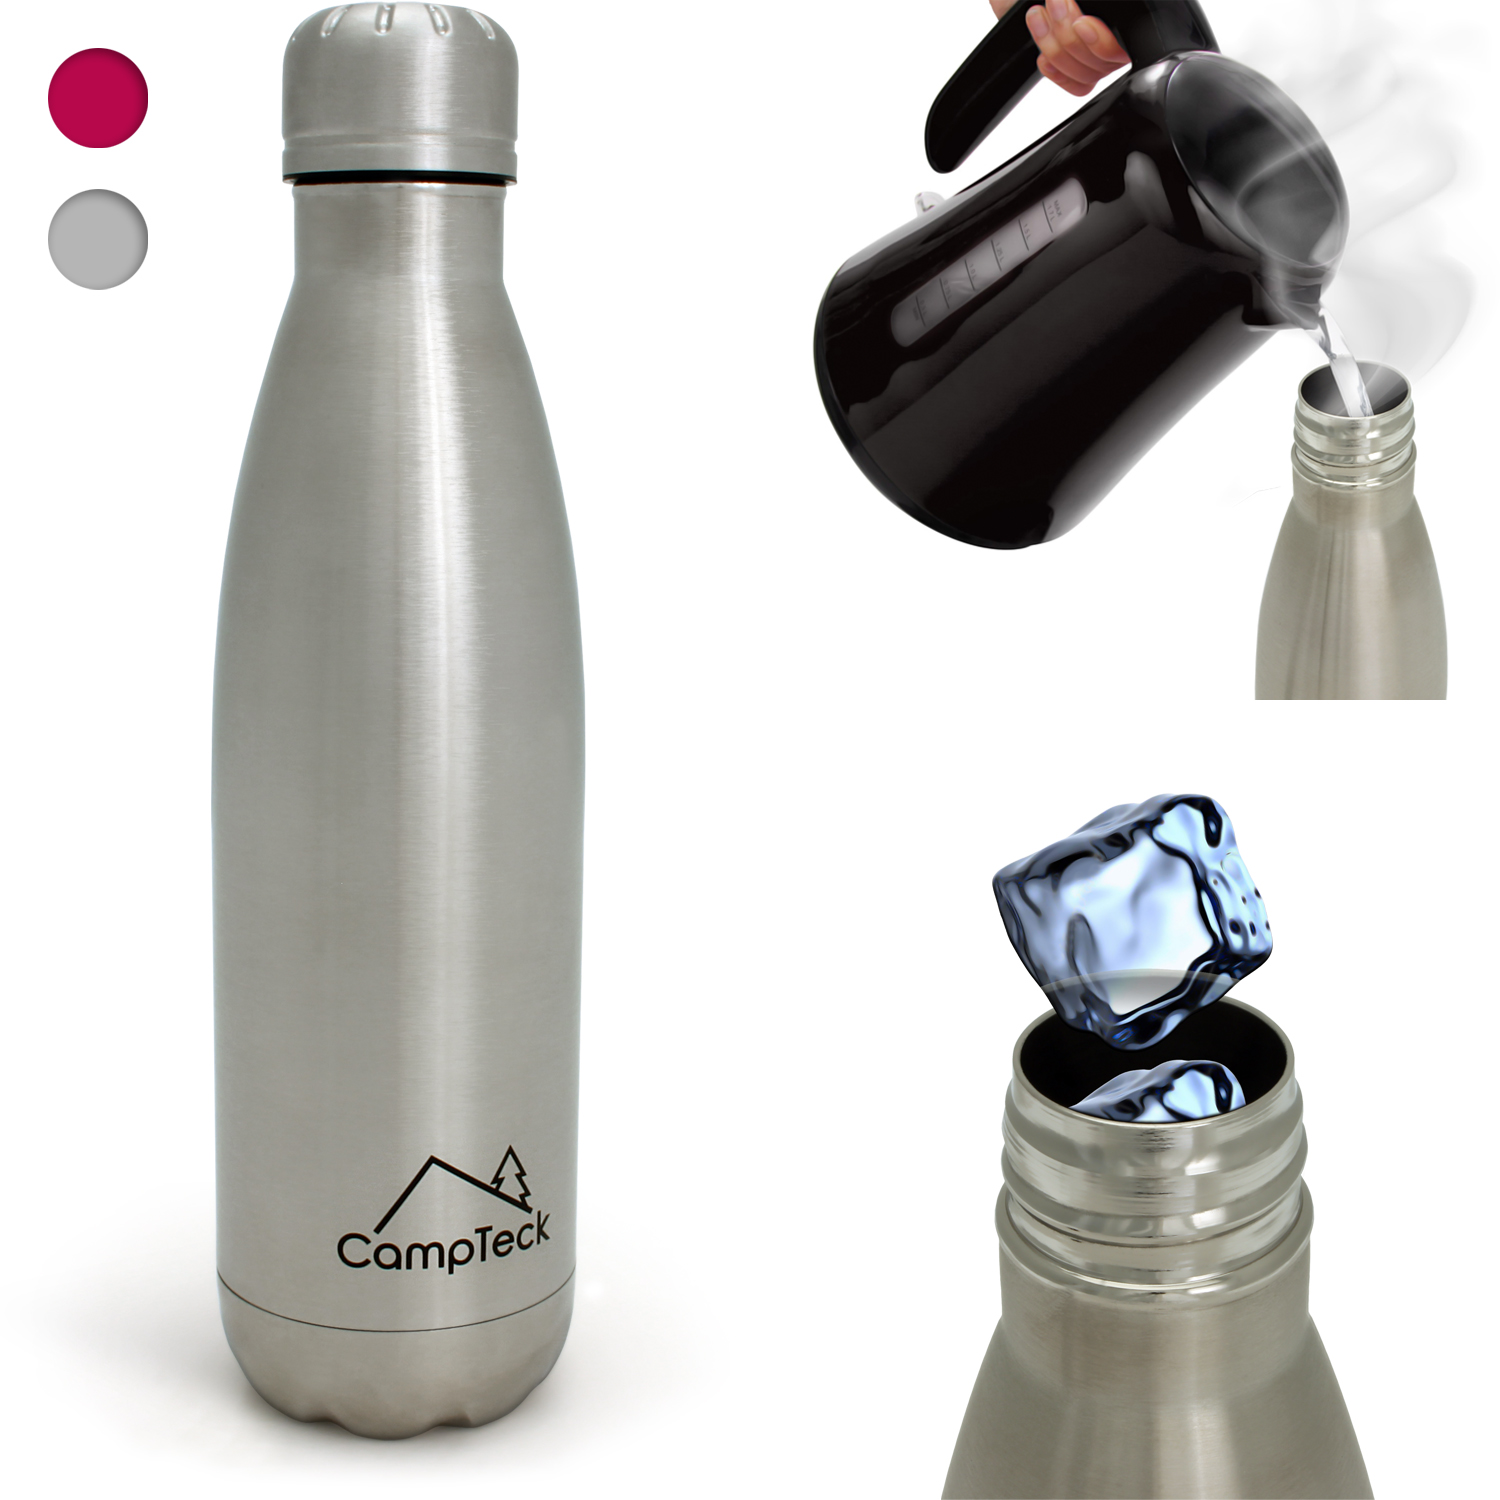 CampTeck 500ml Insulated Stainless Steel Water Bottle Double Walled Vacuum Drinks Sports Bottle - Silver